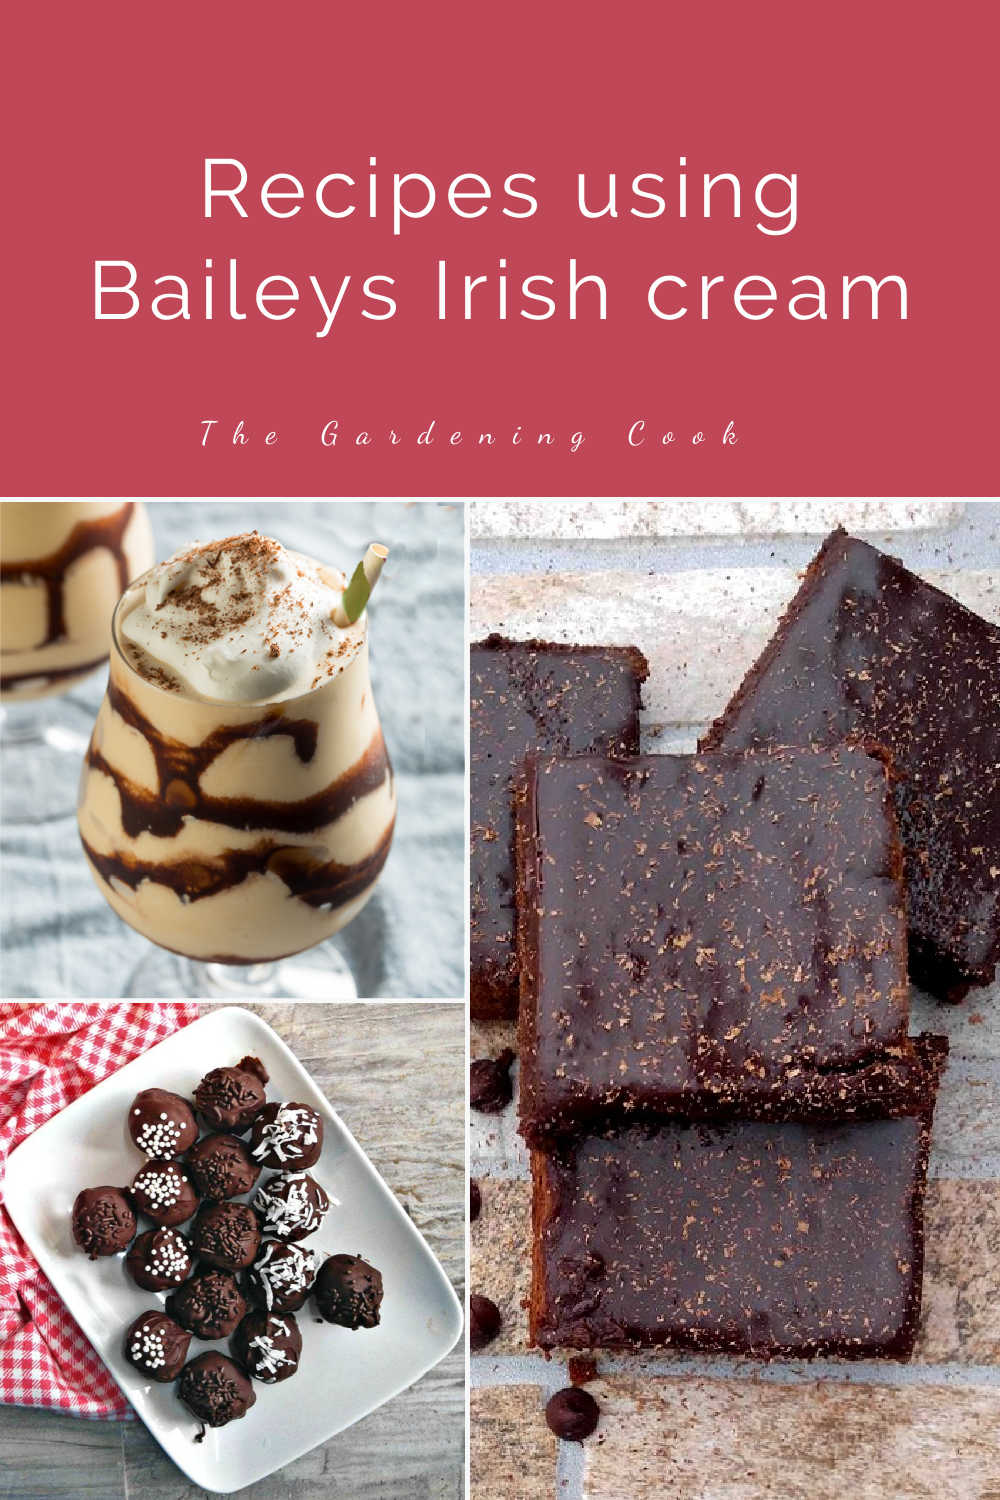 Brownies, truffles and drink in a collage with words reading Recipes using Baileys Irish cream